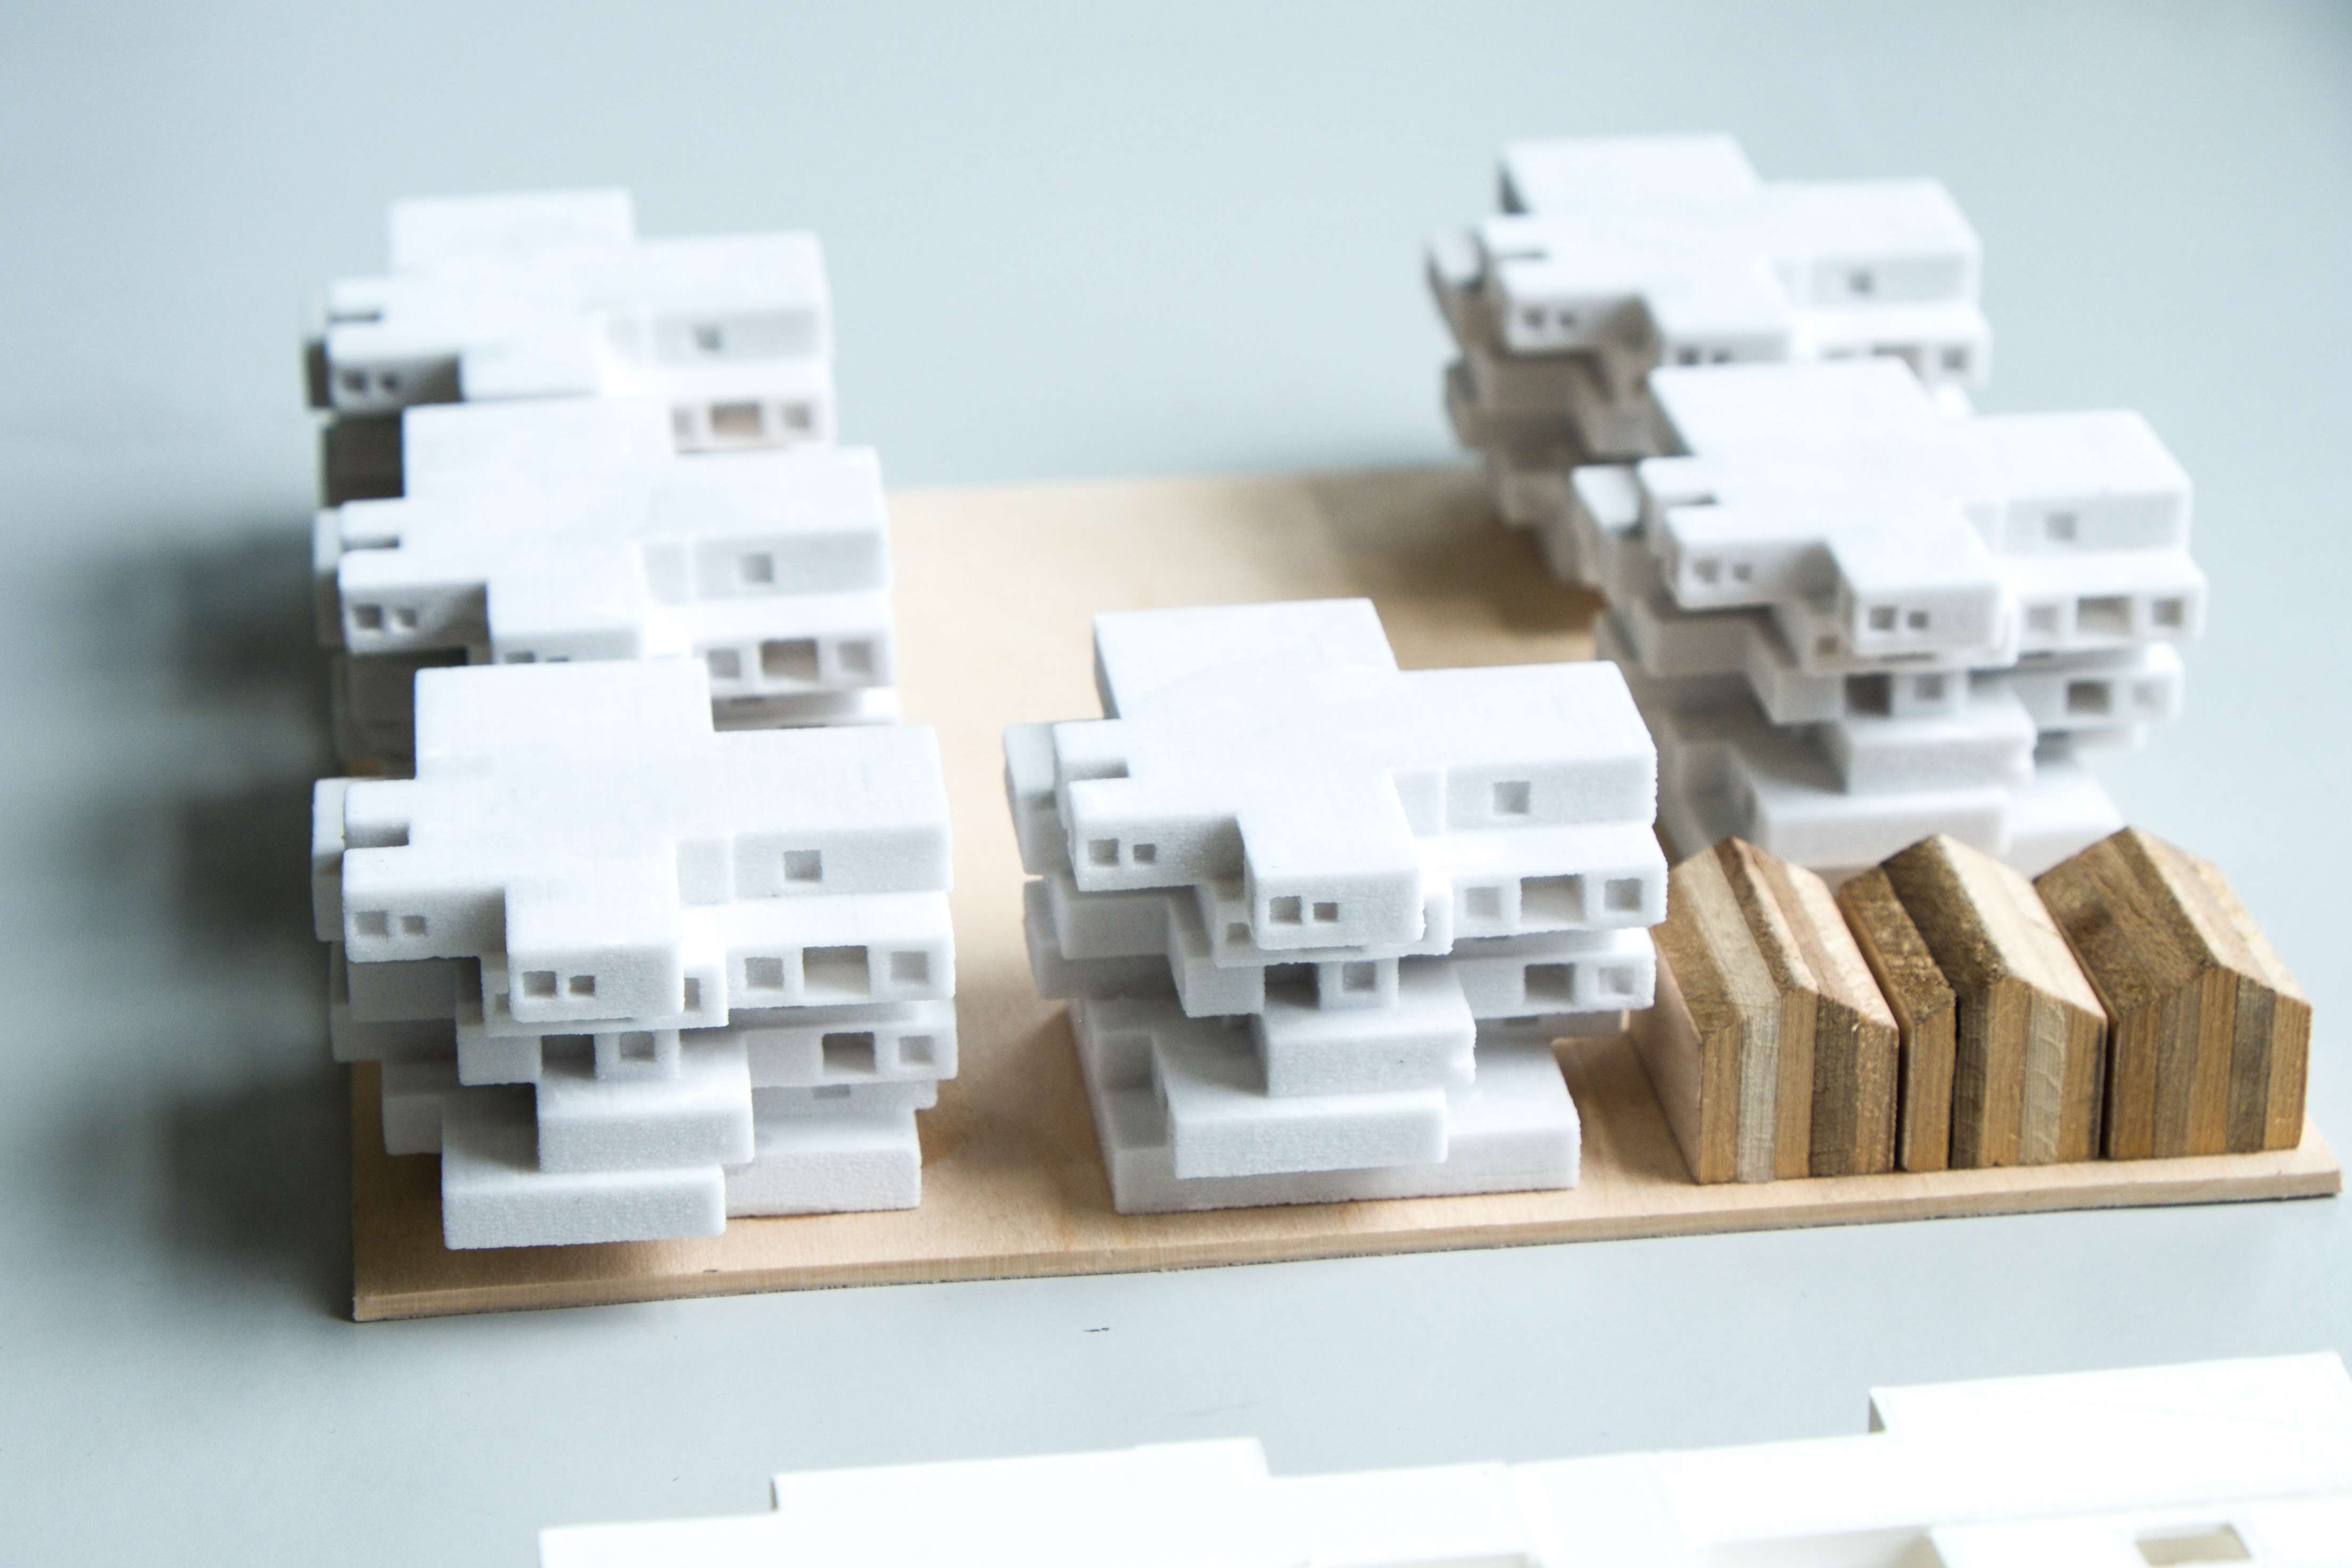 architectural model with 3D printed buildings on a wood base